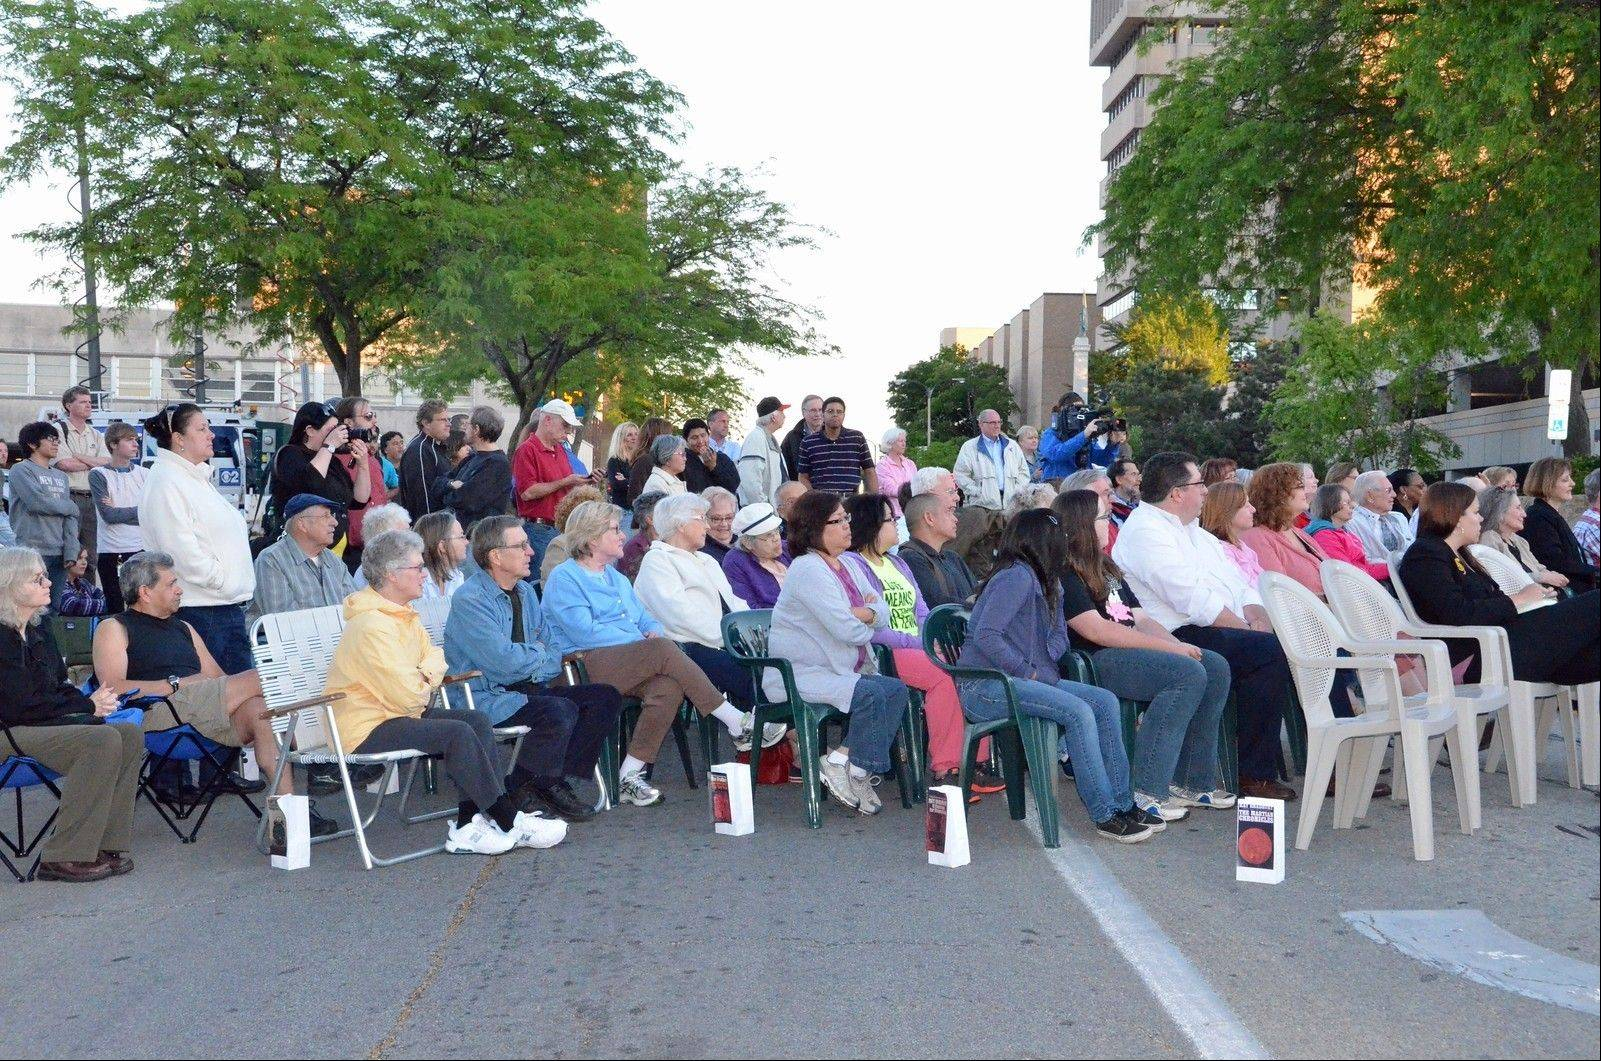 A crowd assembles to hear Ray Bradbury stories and a tribute on June 6.